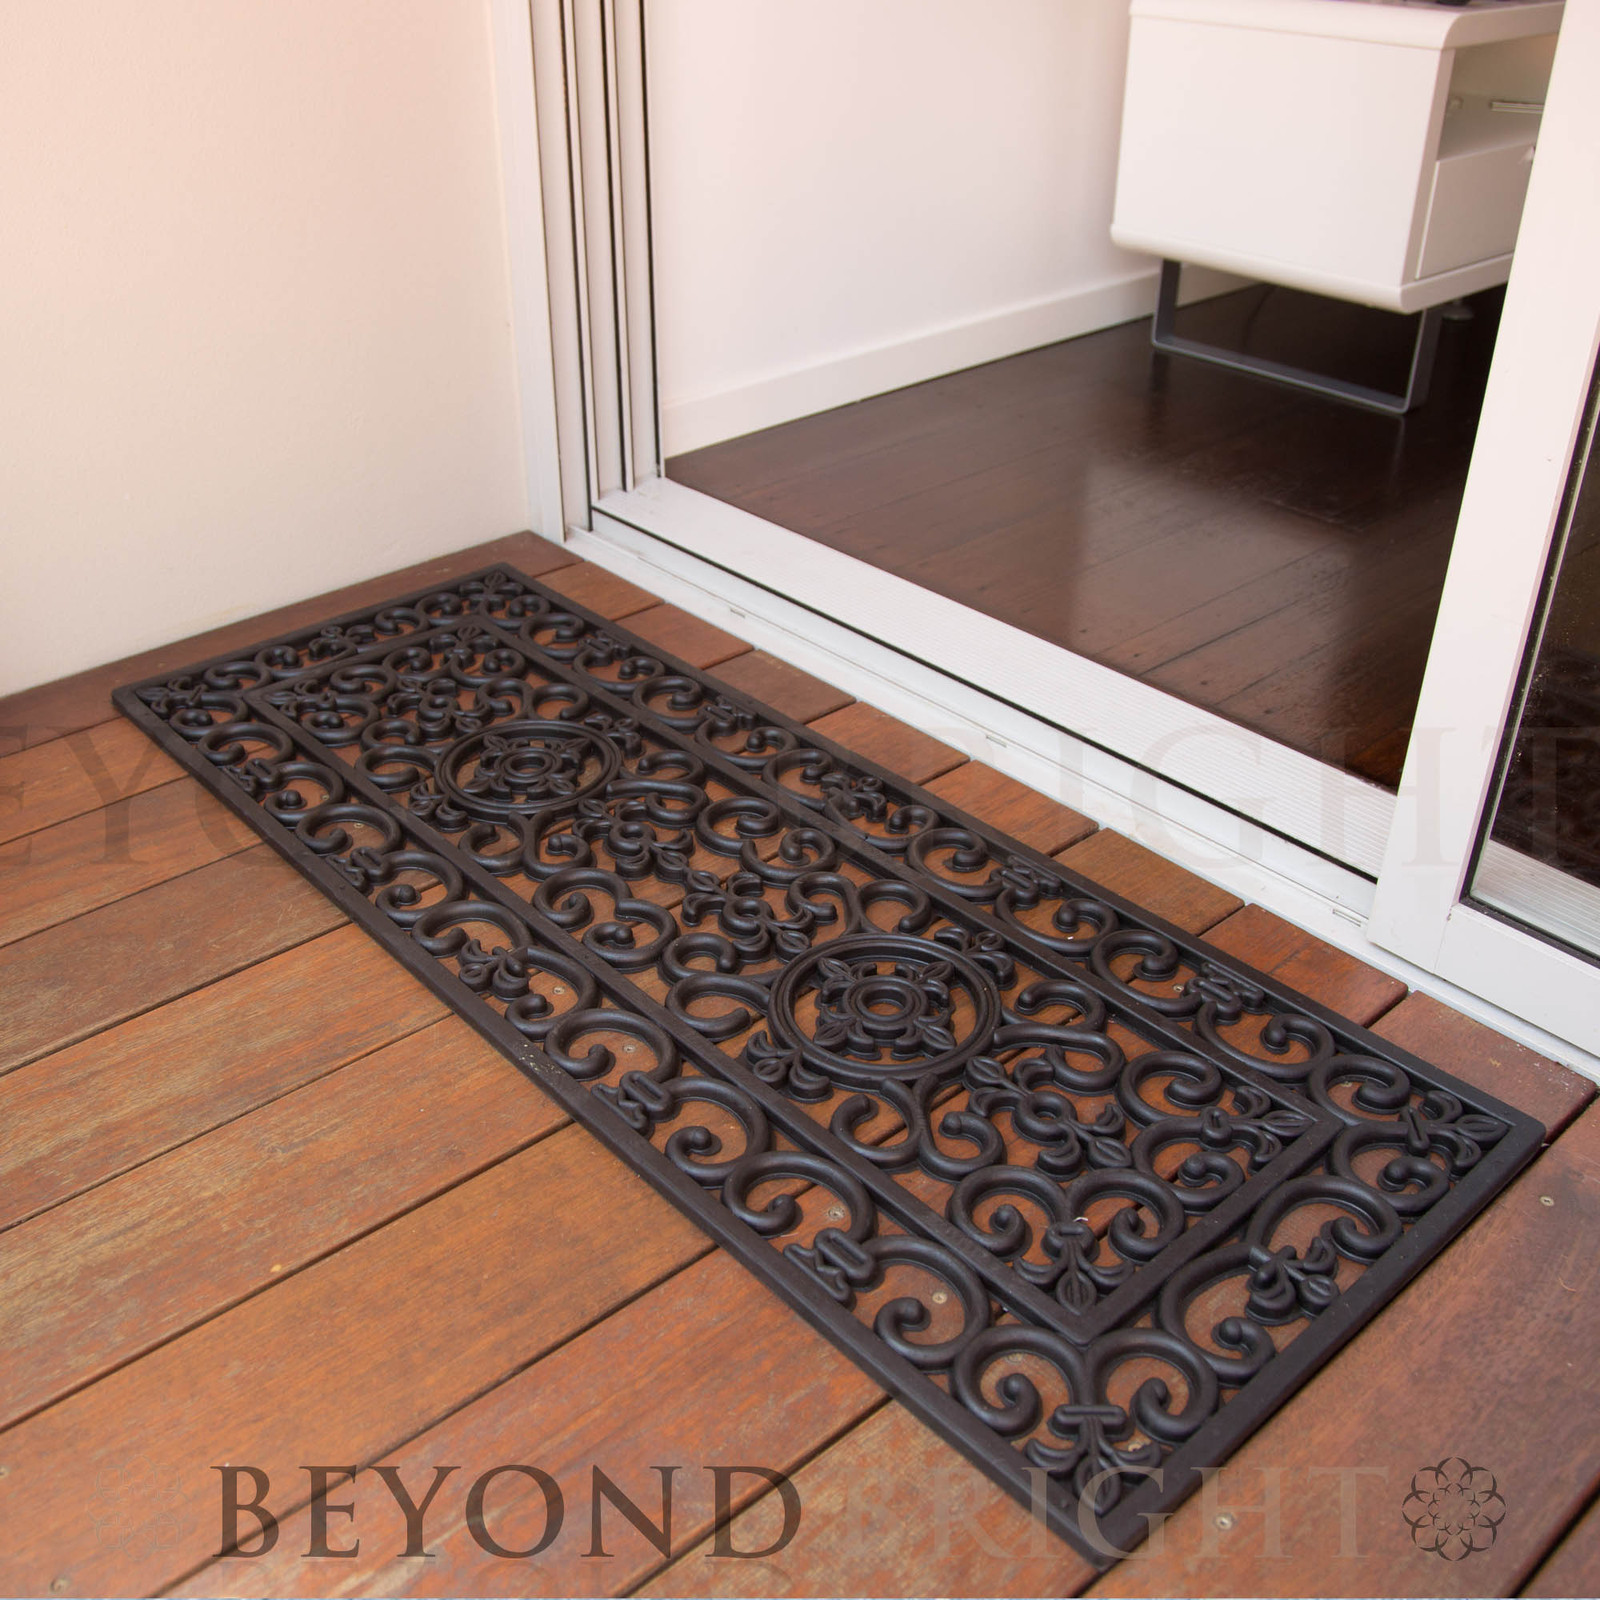 Long 45 X 120cm Rubber Door Mat